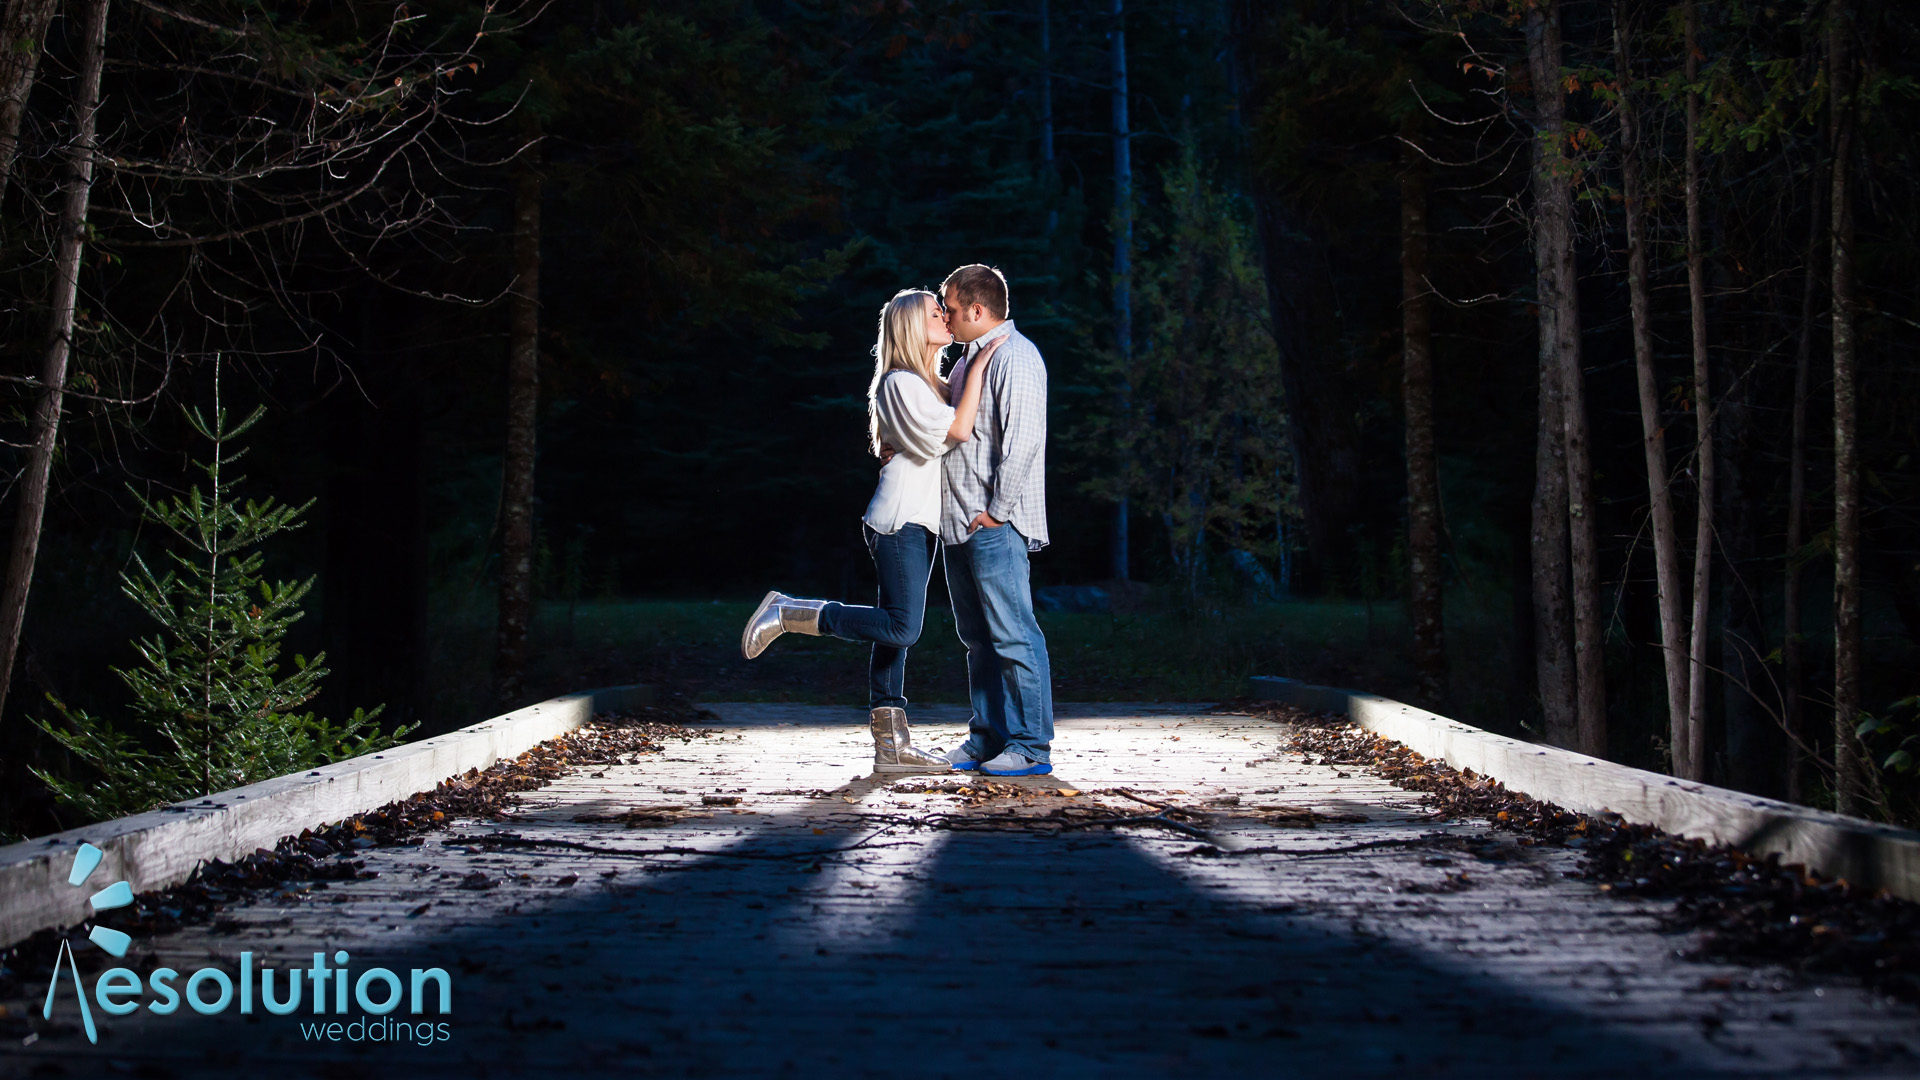 Sarah and Chaz – northwoods engagement photography